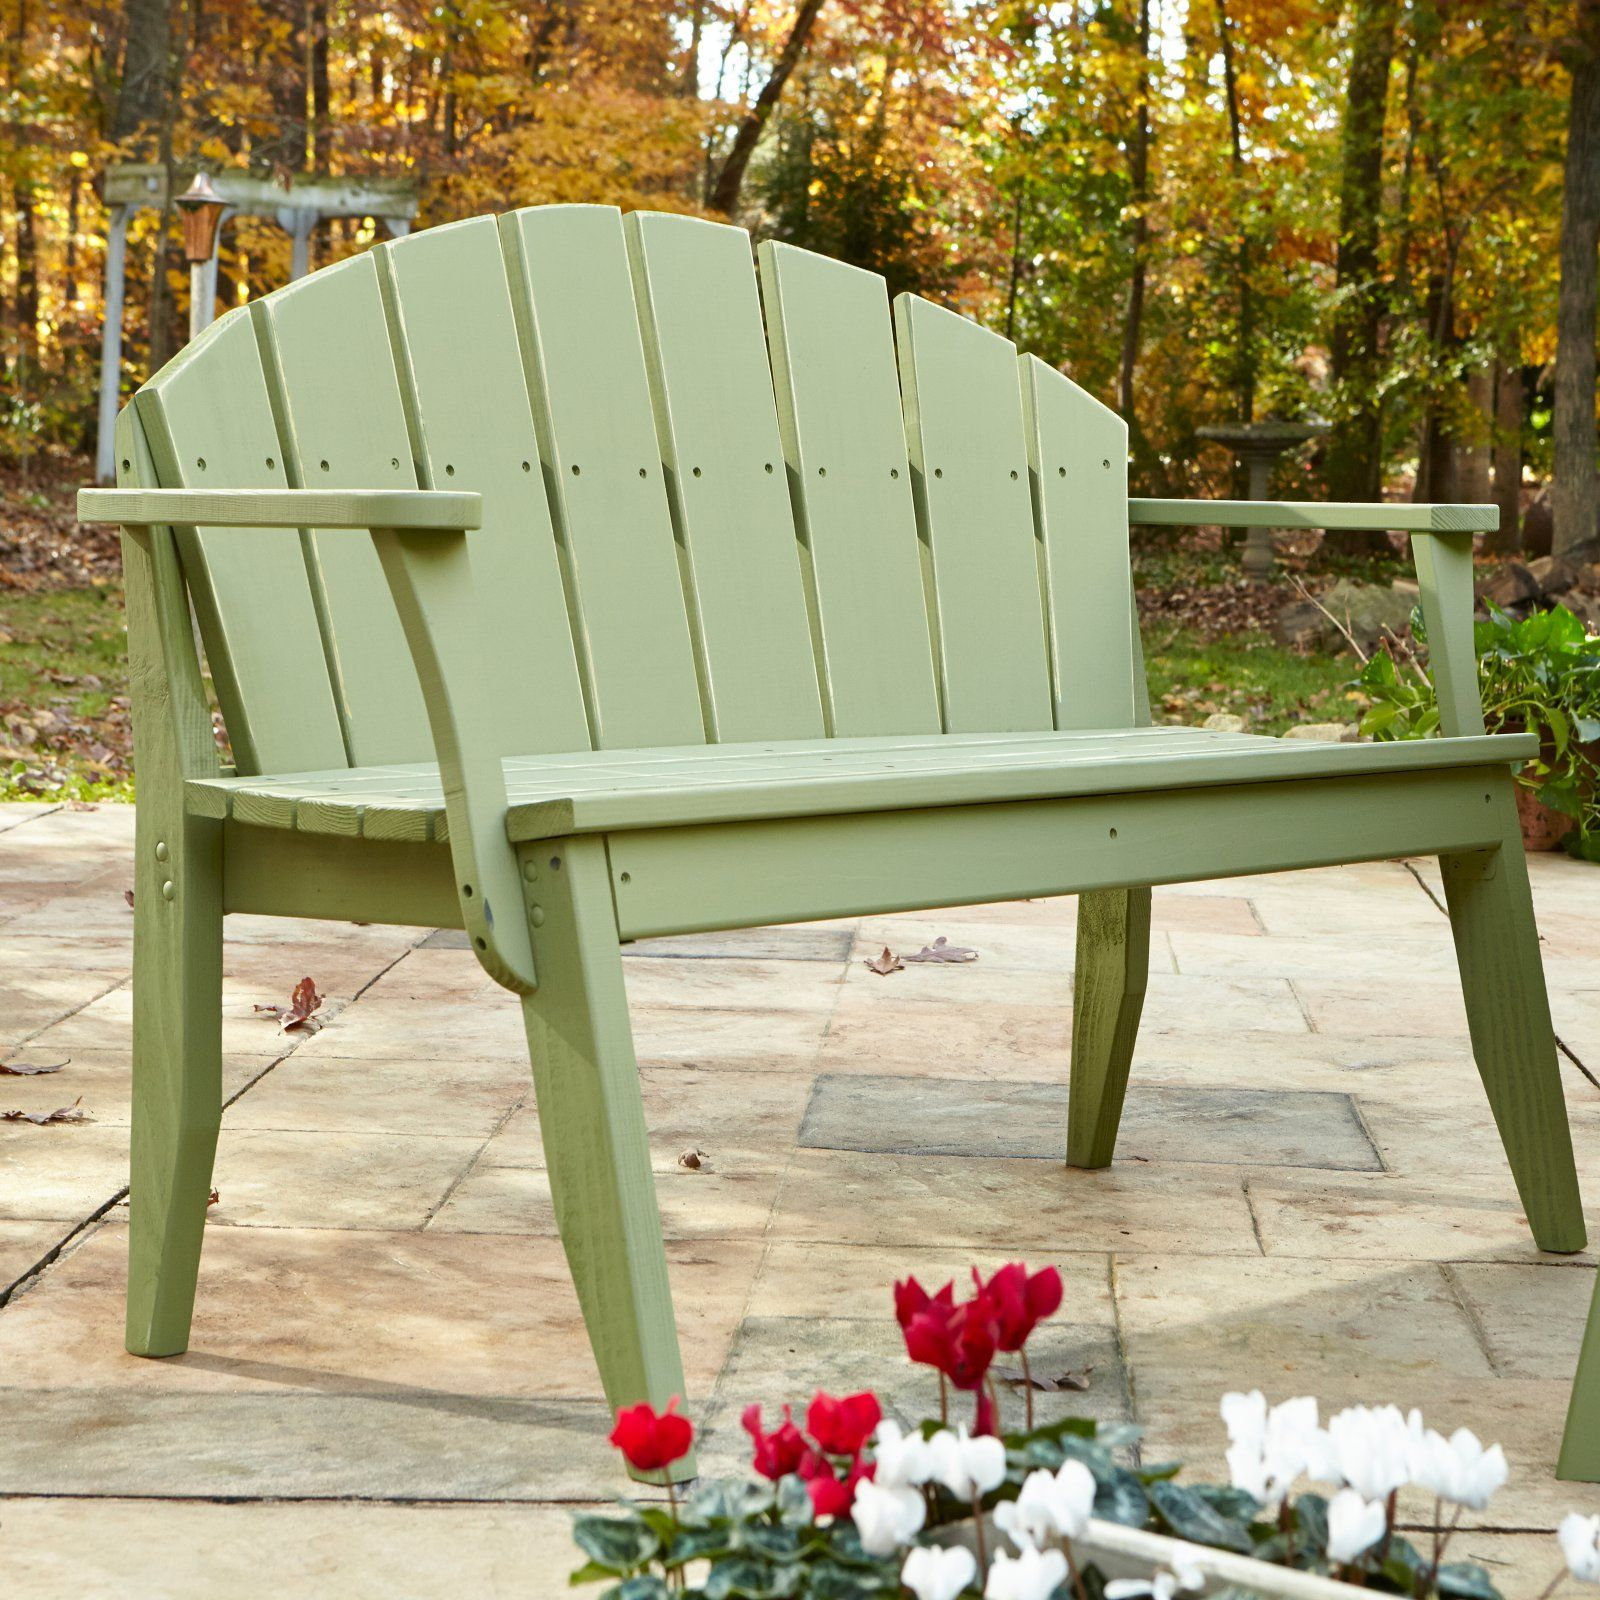 Fabulous Outdoor Uwharrie Plaza Patio Bench With Arched Back In 2019 Creativecarmelina Interior Chair Design Creativecarmelinacom